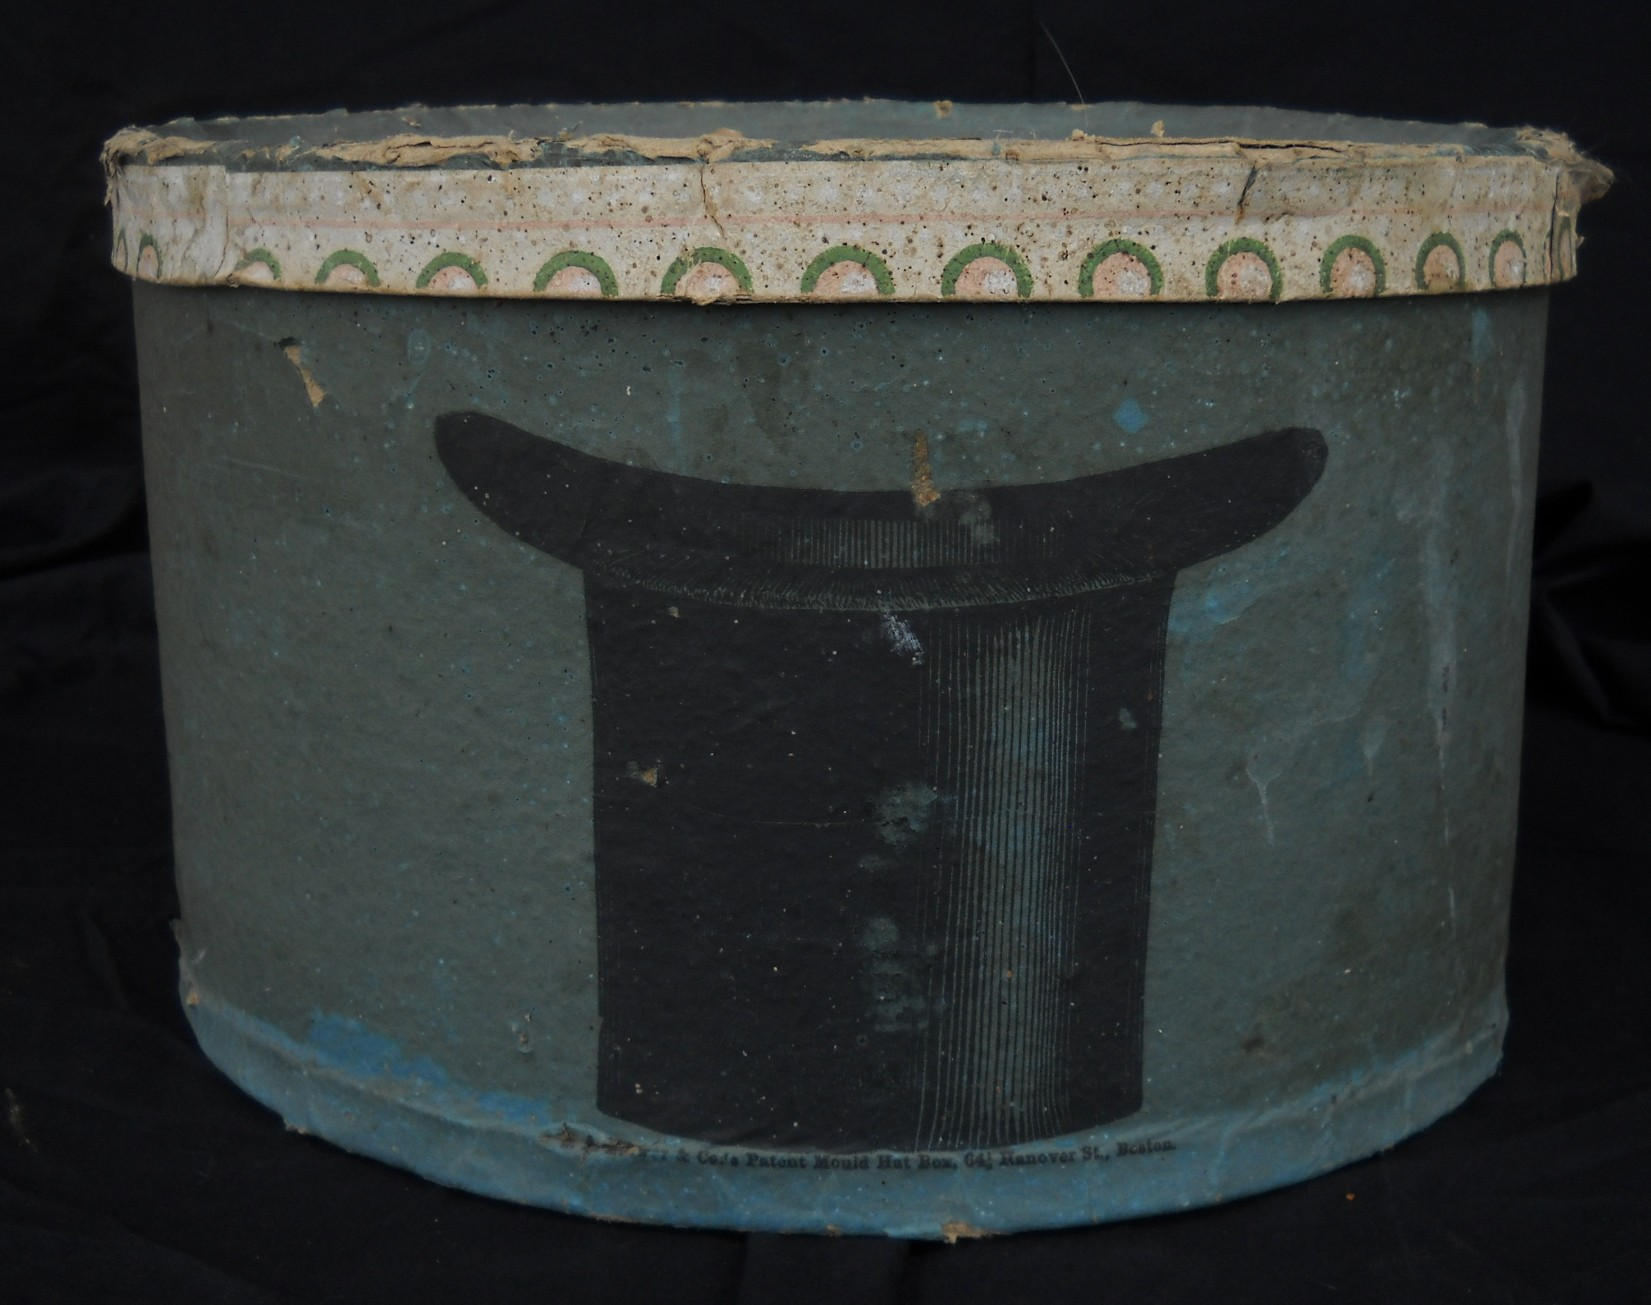 A-mid-th-century-covered-hat-box-or-bandbox-made-by-S-A-Brower-Co-s-Factory-which-w-wallpaper-wp5203675